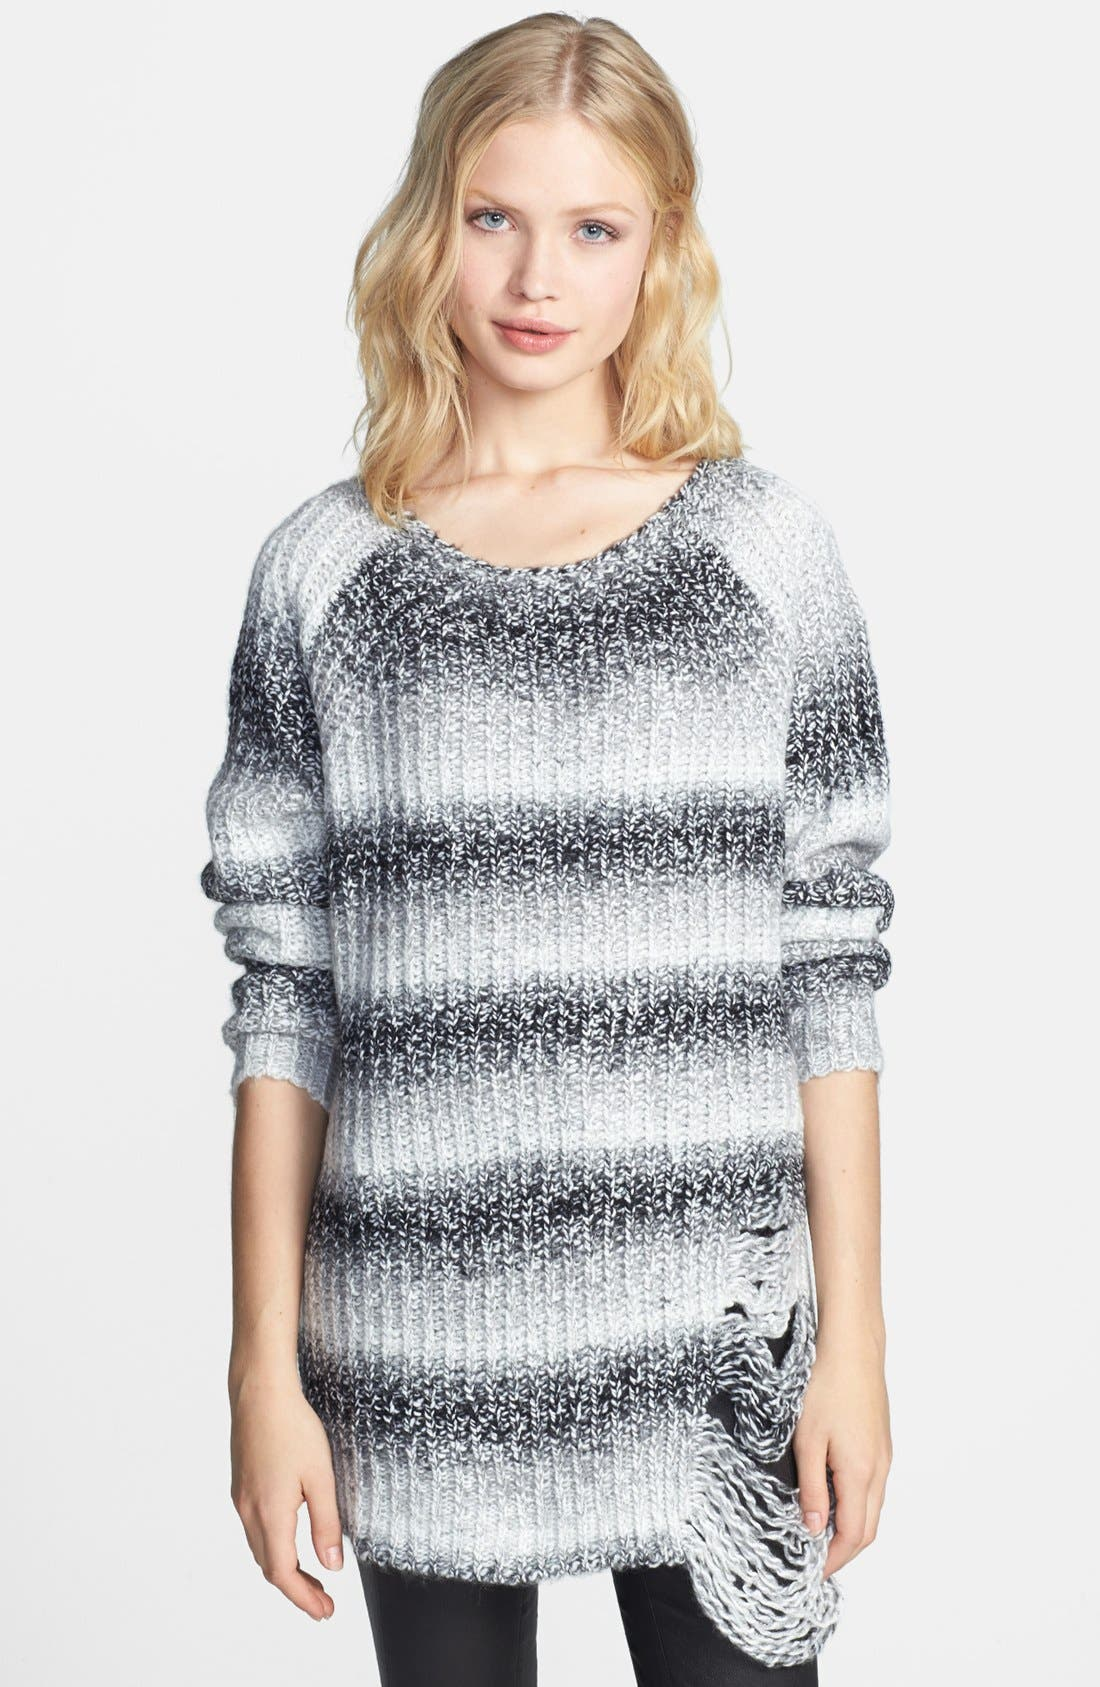 Main Image - ELEVENPARIS 'Tinter' Destroyed Marled Sweater